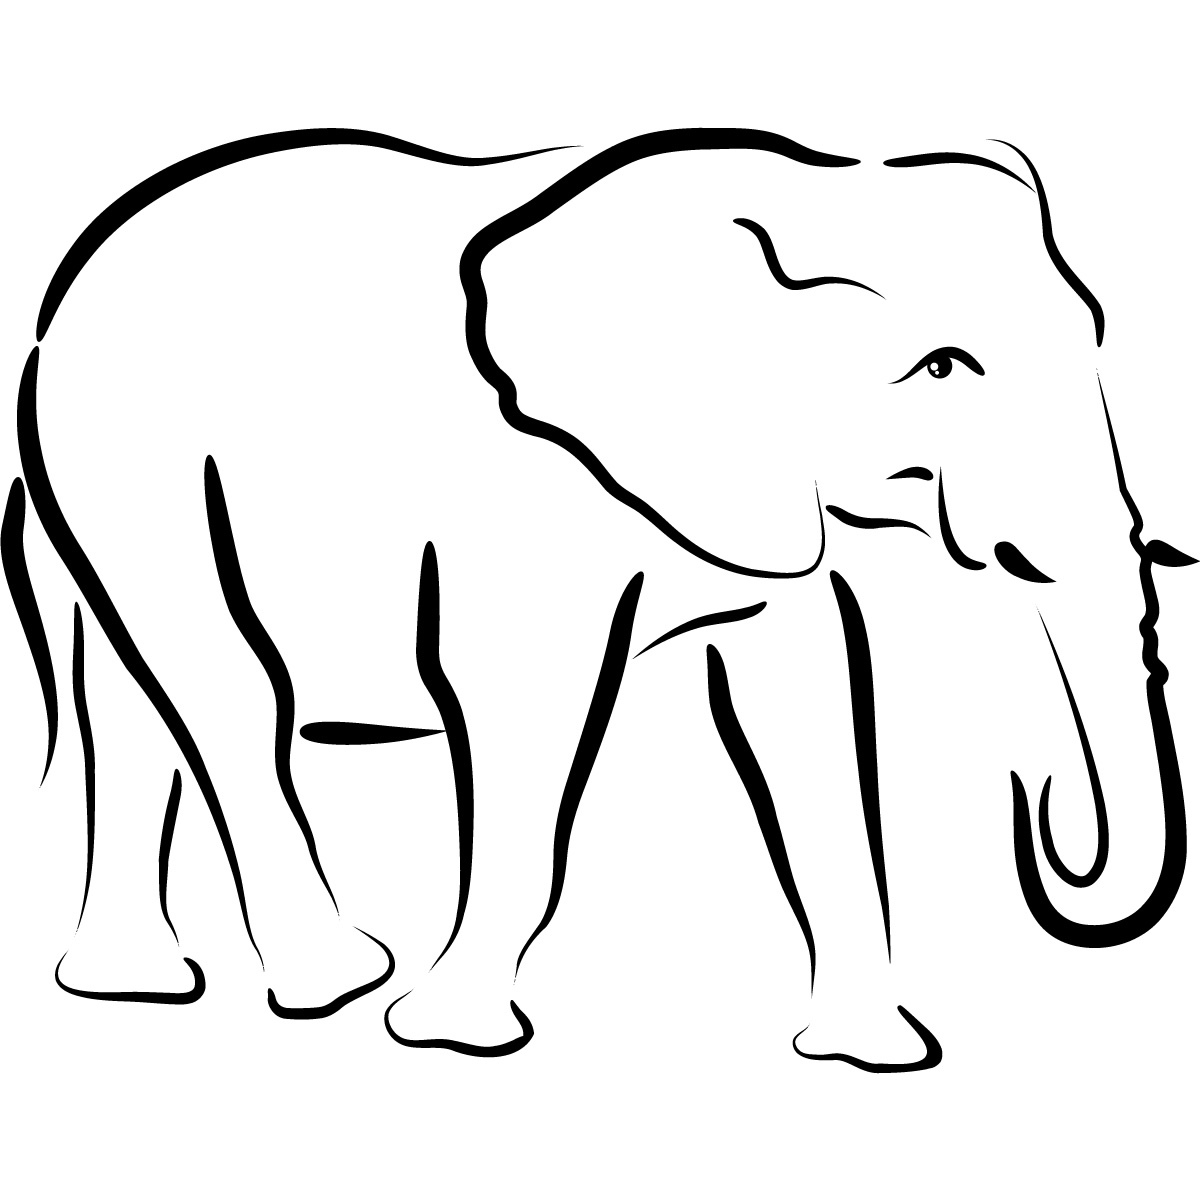 Free Outline Pictures Of Animals, Download Free Clip Art, Free Clip - Free Printable Arty Animal Outlines